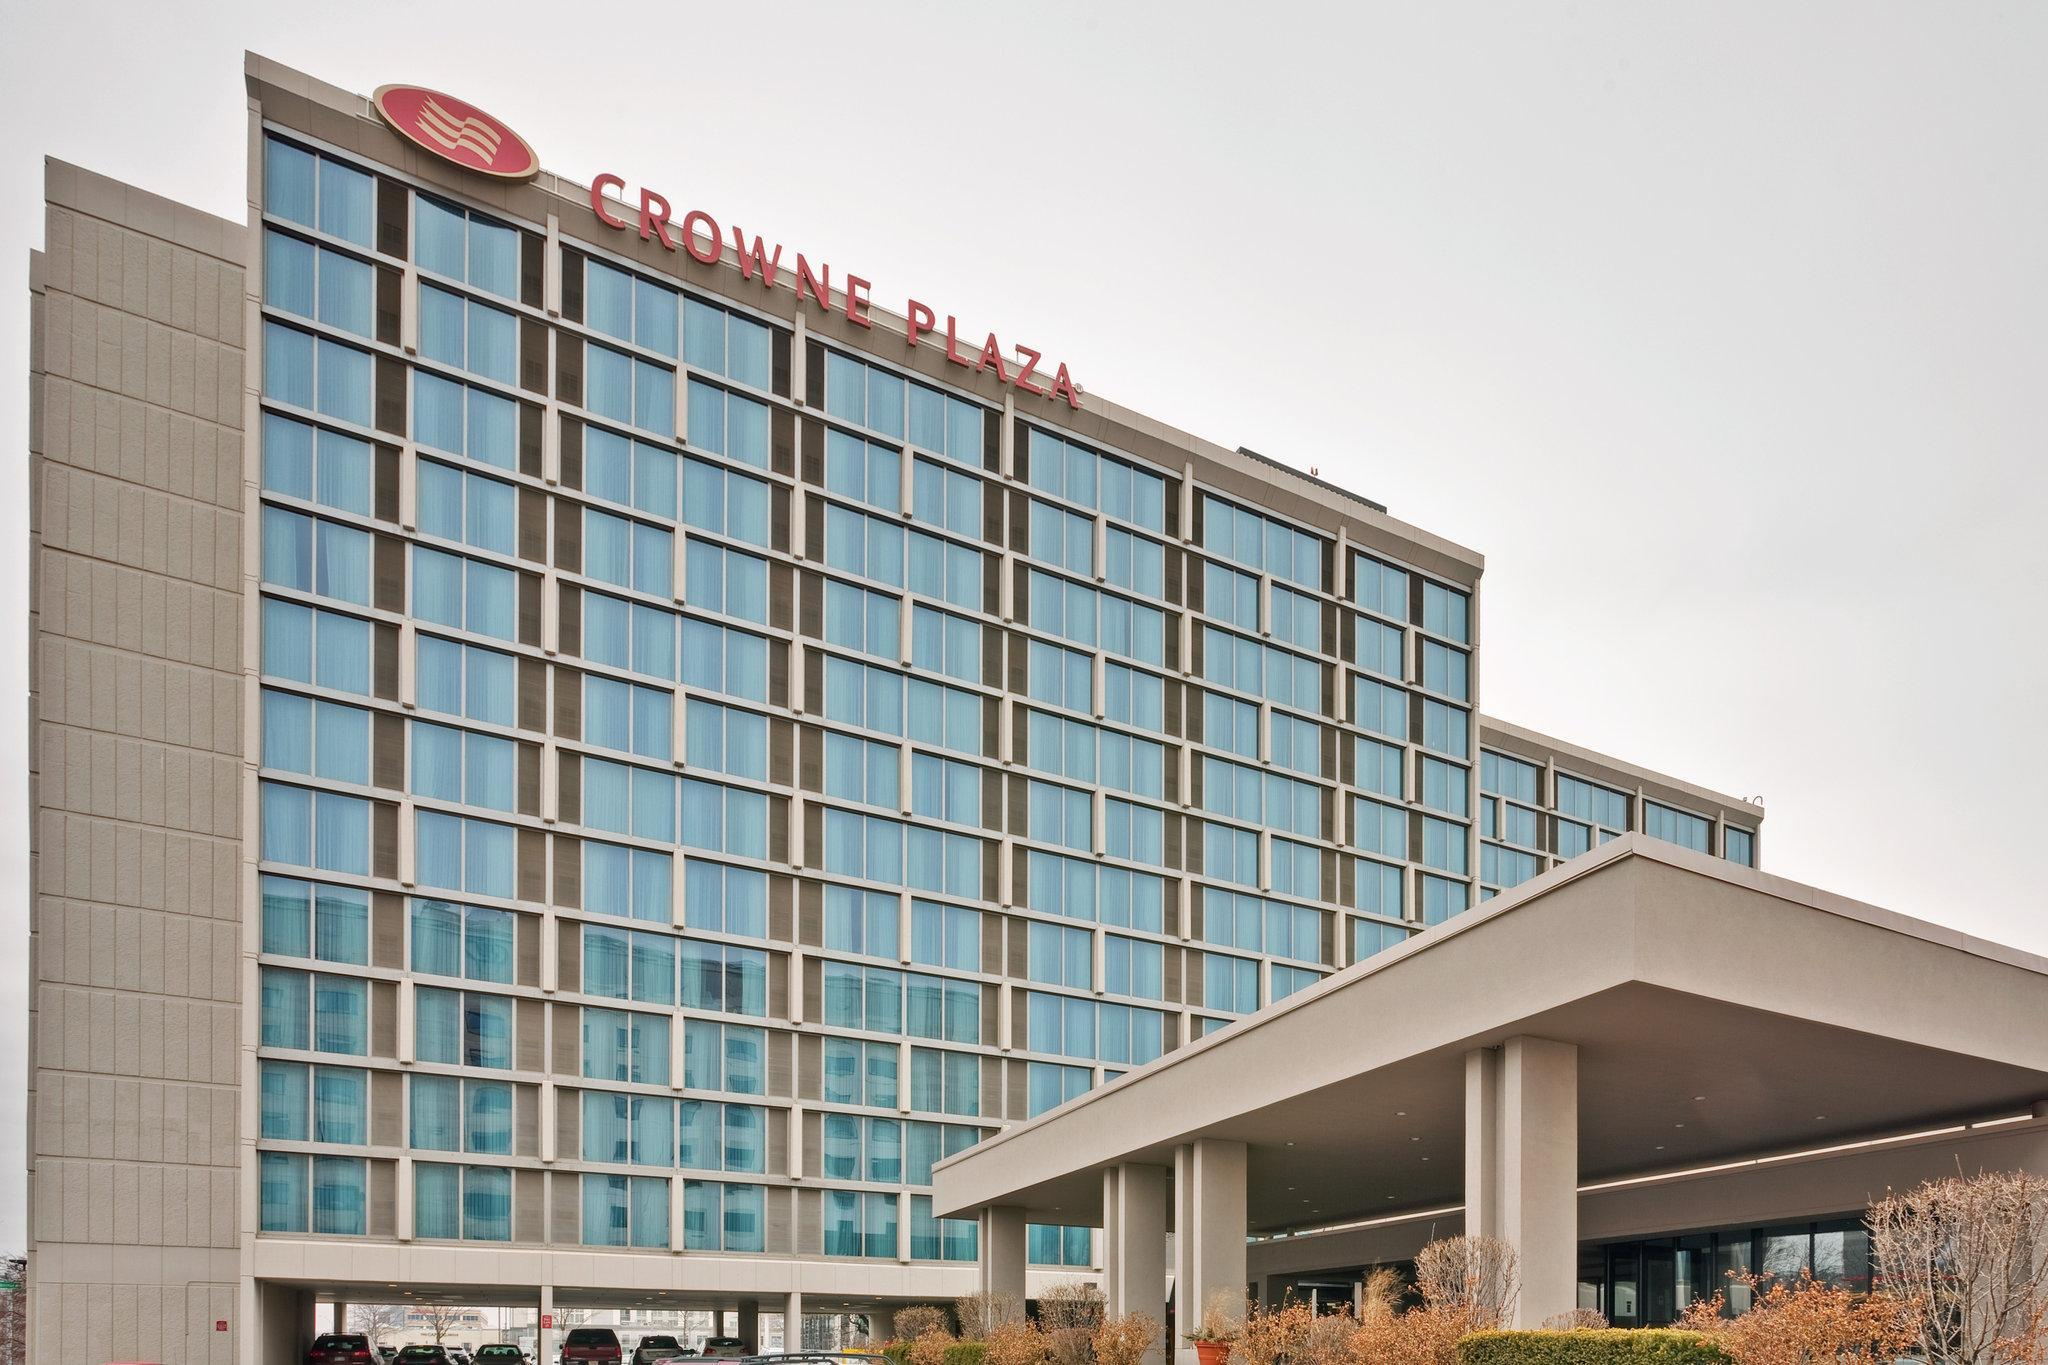 Crowne Plaza Chicago O'Hare Hotel And Conference Center